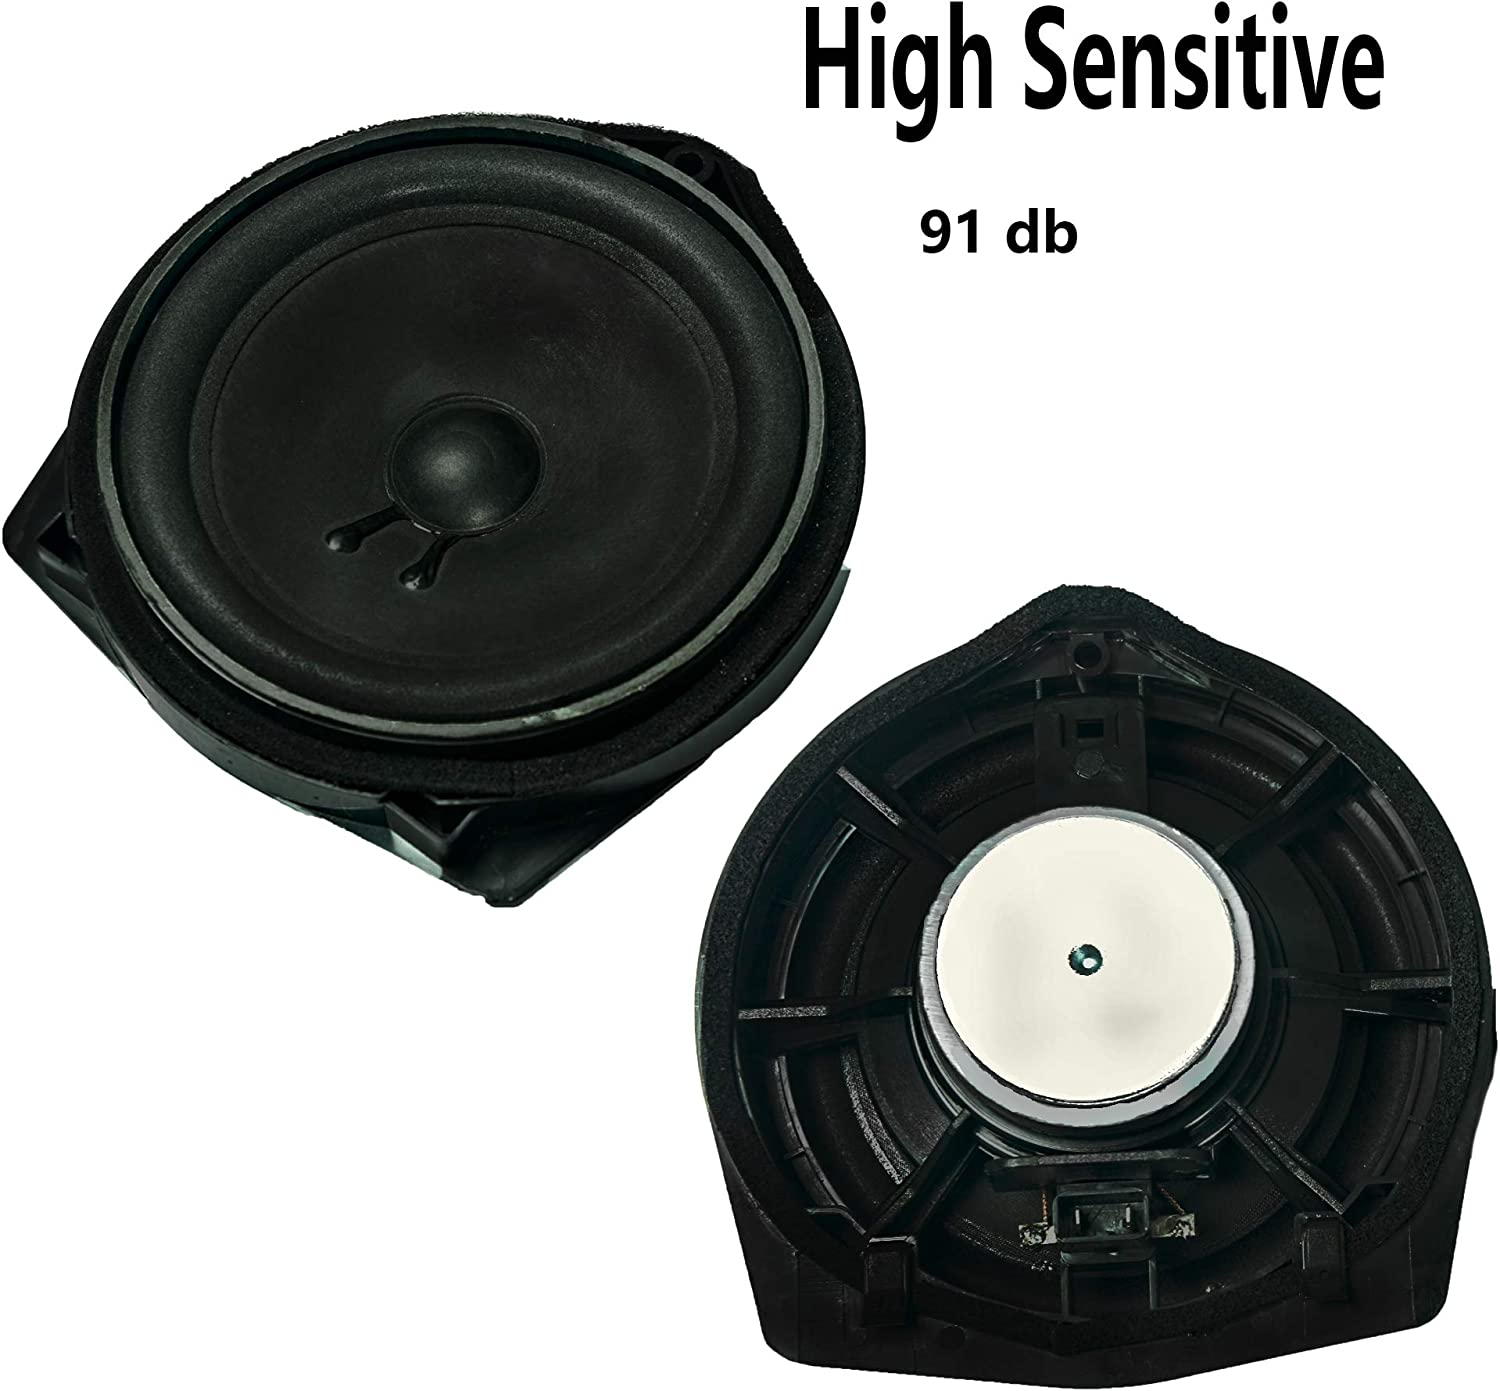 Speaker Compatible with 2008 2009 2010 2011 2012 2013 2014 2015 2016 2017 2018 2019 2020 Honda Civic Accord CRV Odyssey